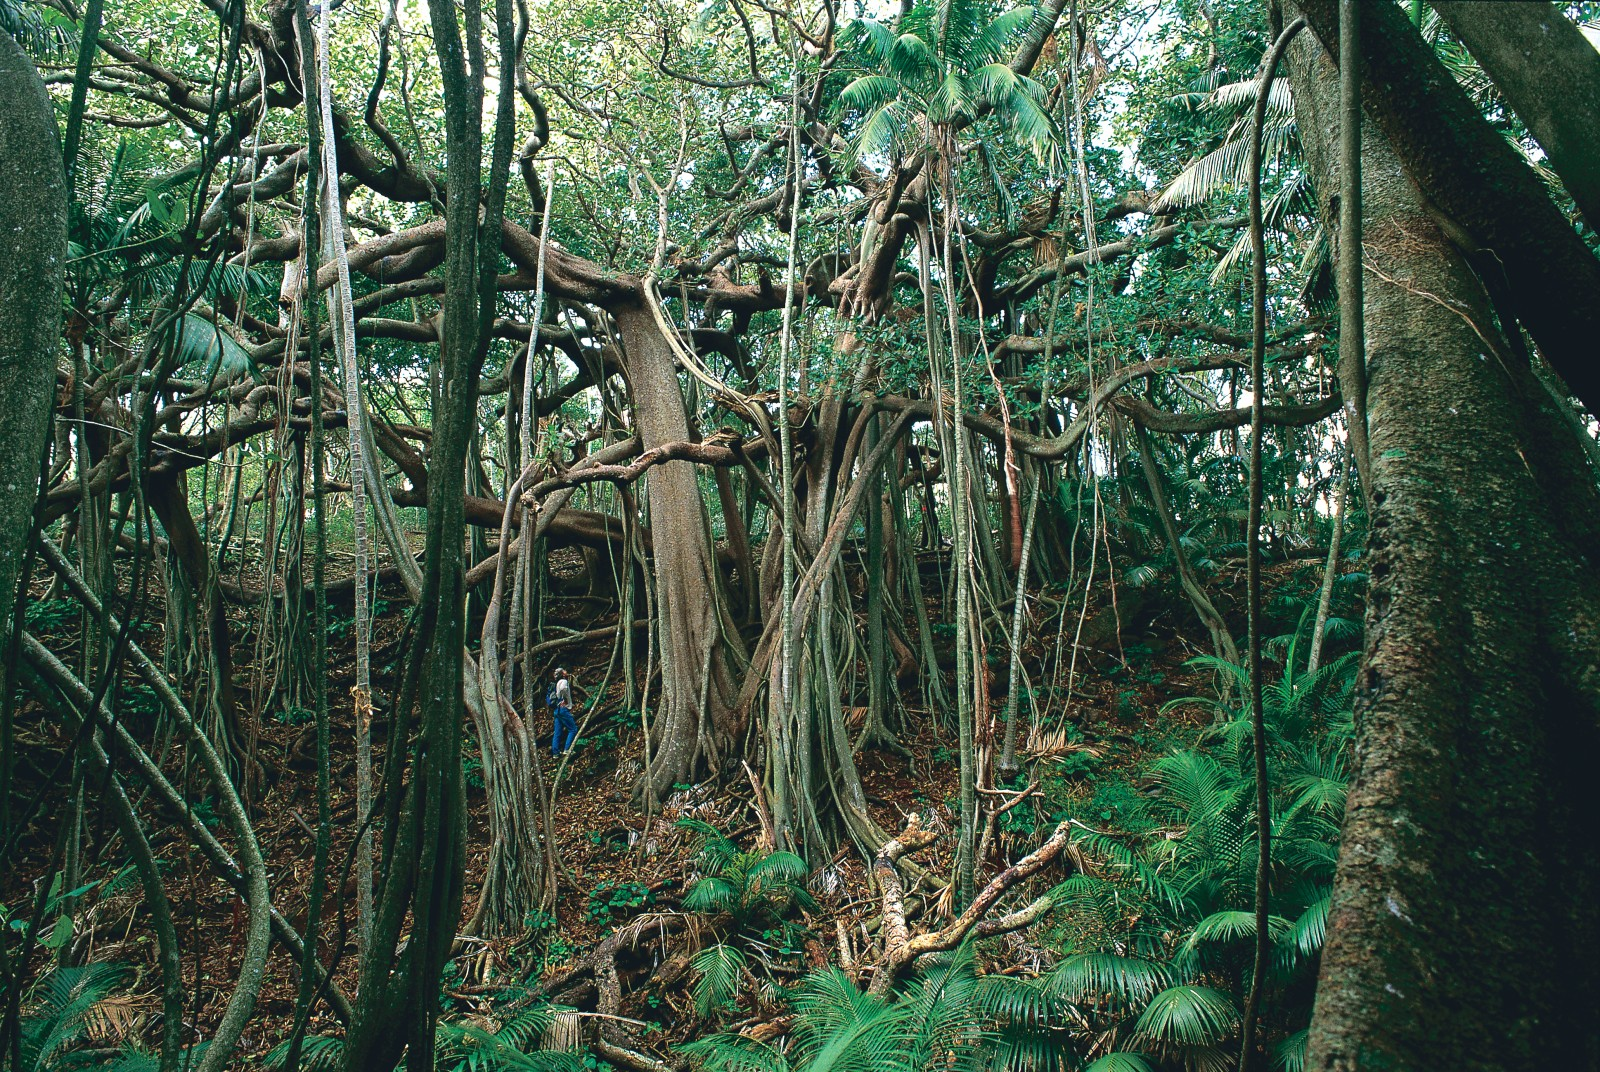 Banyans are the largest trees on the island. One specimen, destroyed by a landslide from Mt Gower in 1998, covered two hectares. The large spreading boughs are supported by hanging roots which develop into additional trunks.